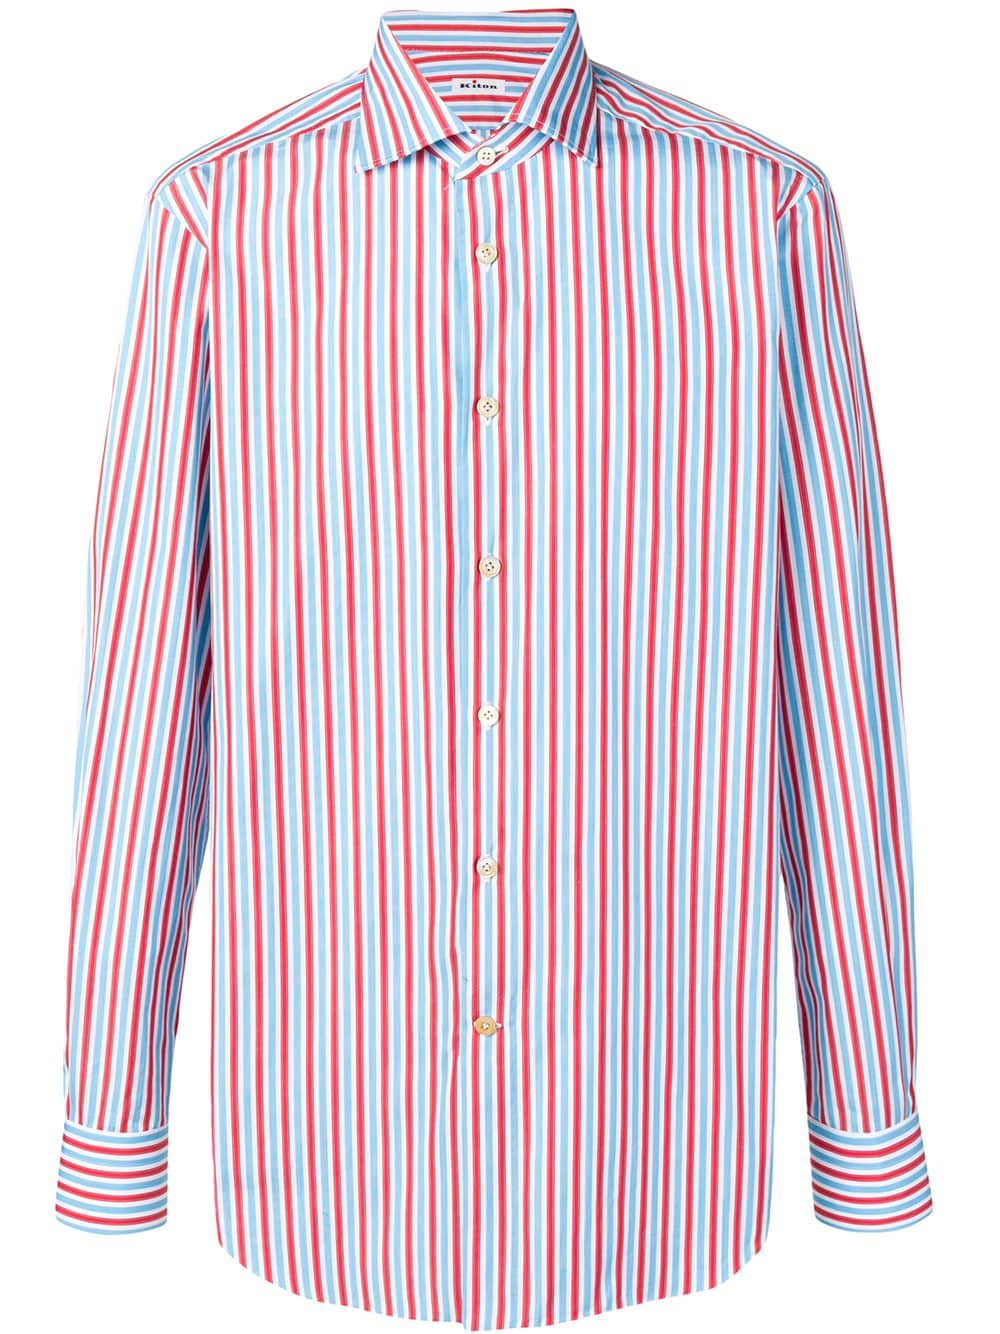 bd895f712c Shirt With Red, White And Light Blue Stripes - KITON - Russocapri